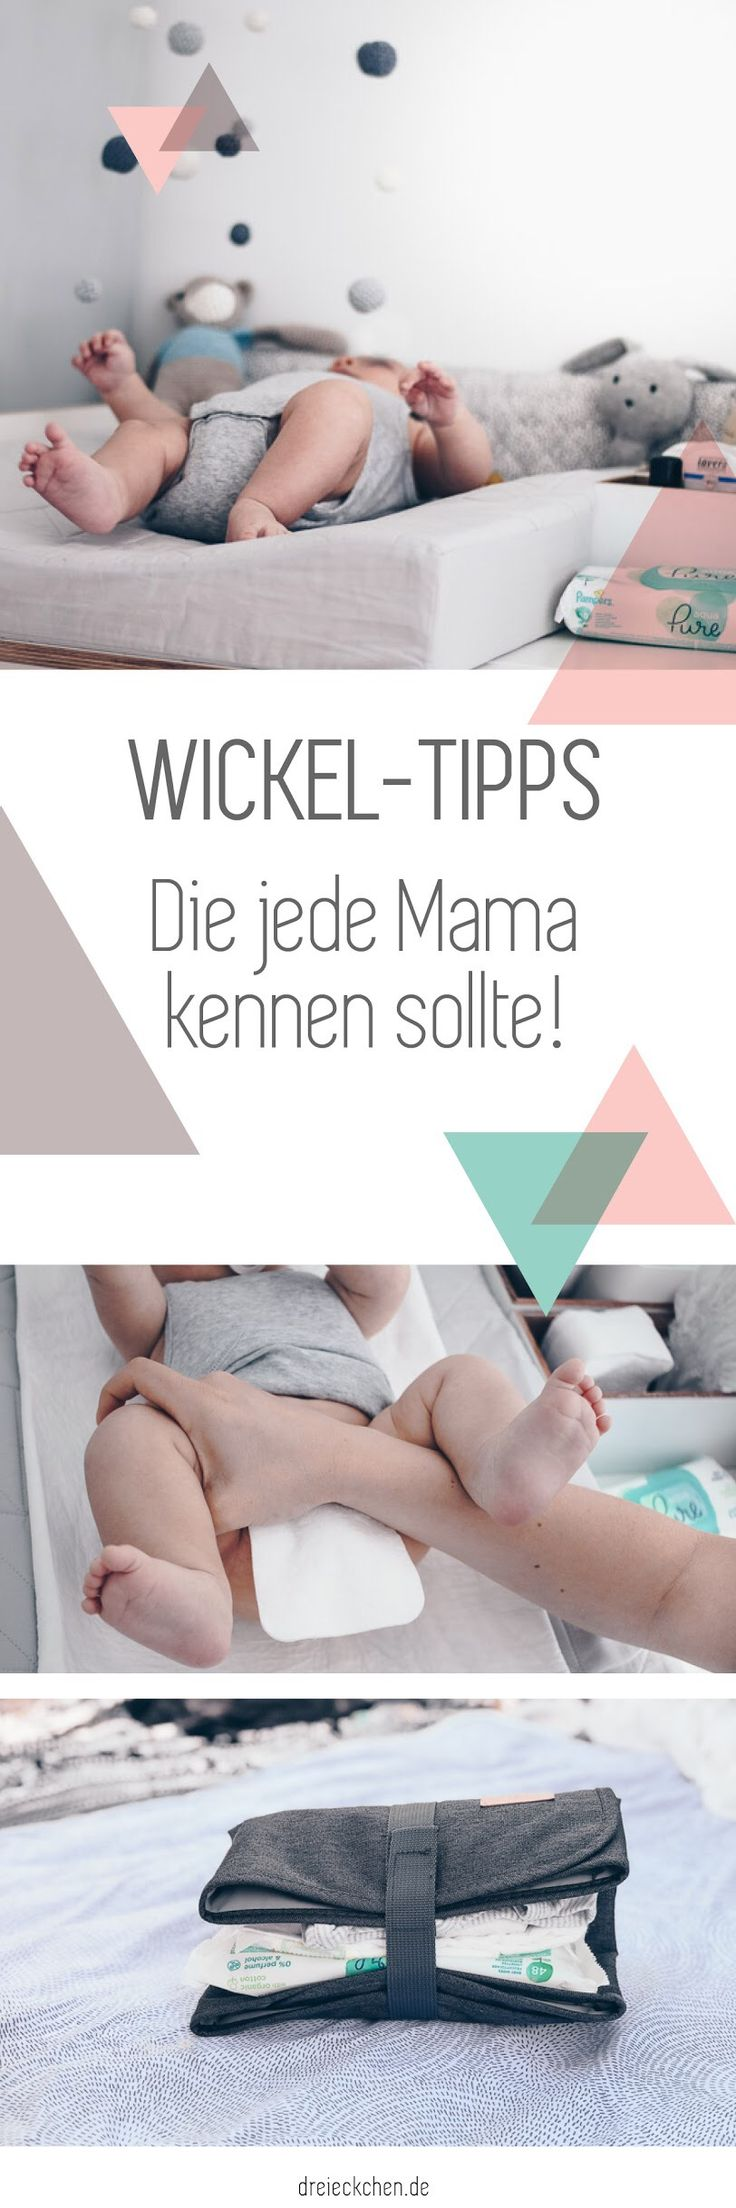 Wrapping tips for at home and on the way, which every mom should know   – family #blogstlove